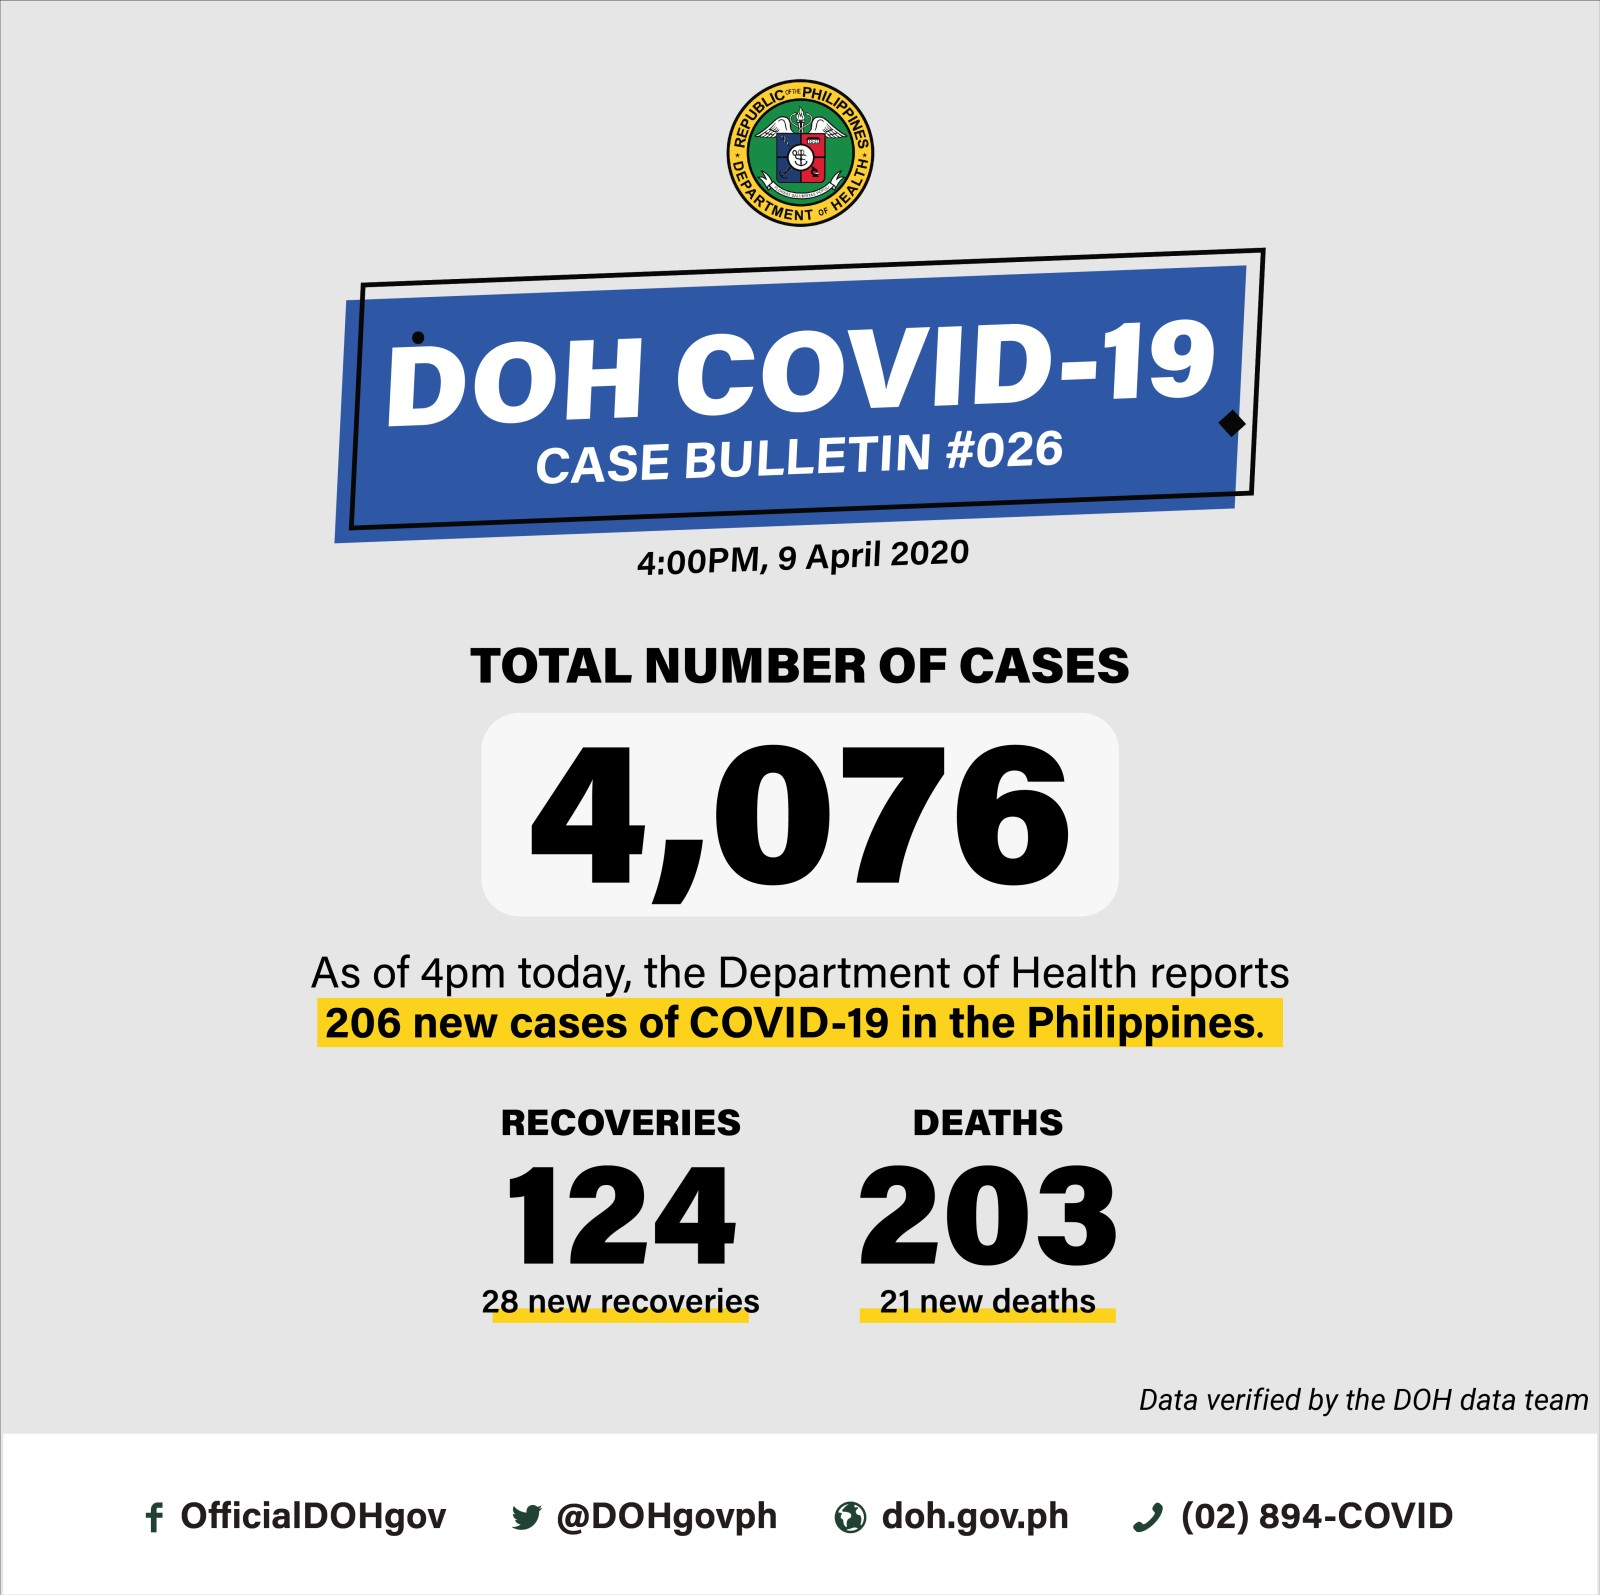 Philippines COVID-19 cases top 4.000. Update on PPE delivery - Outbreak News Today